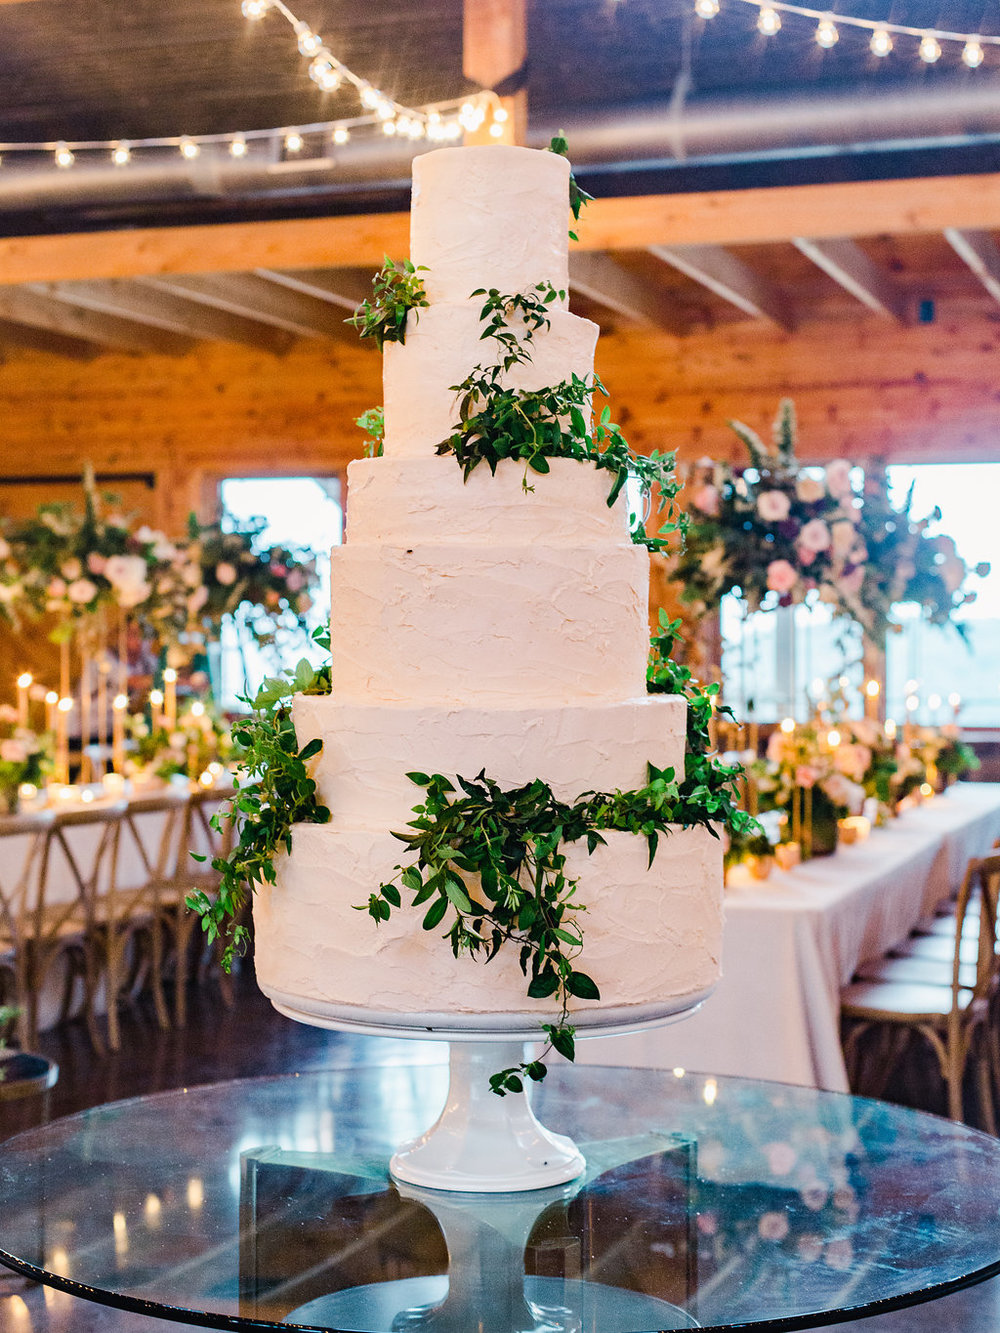 jessica-zimmerman-events-wedding-details-cake.jpg